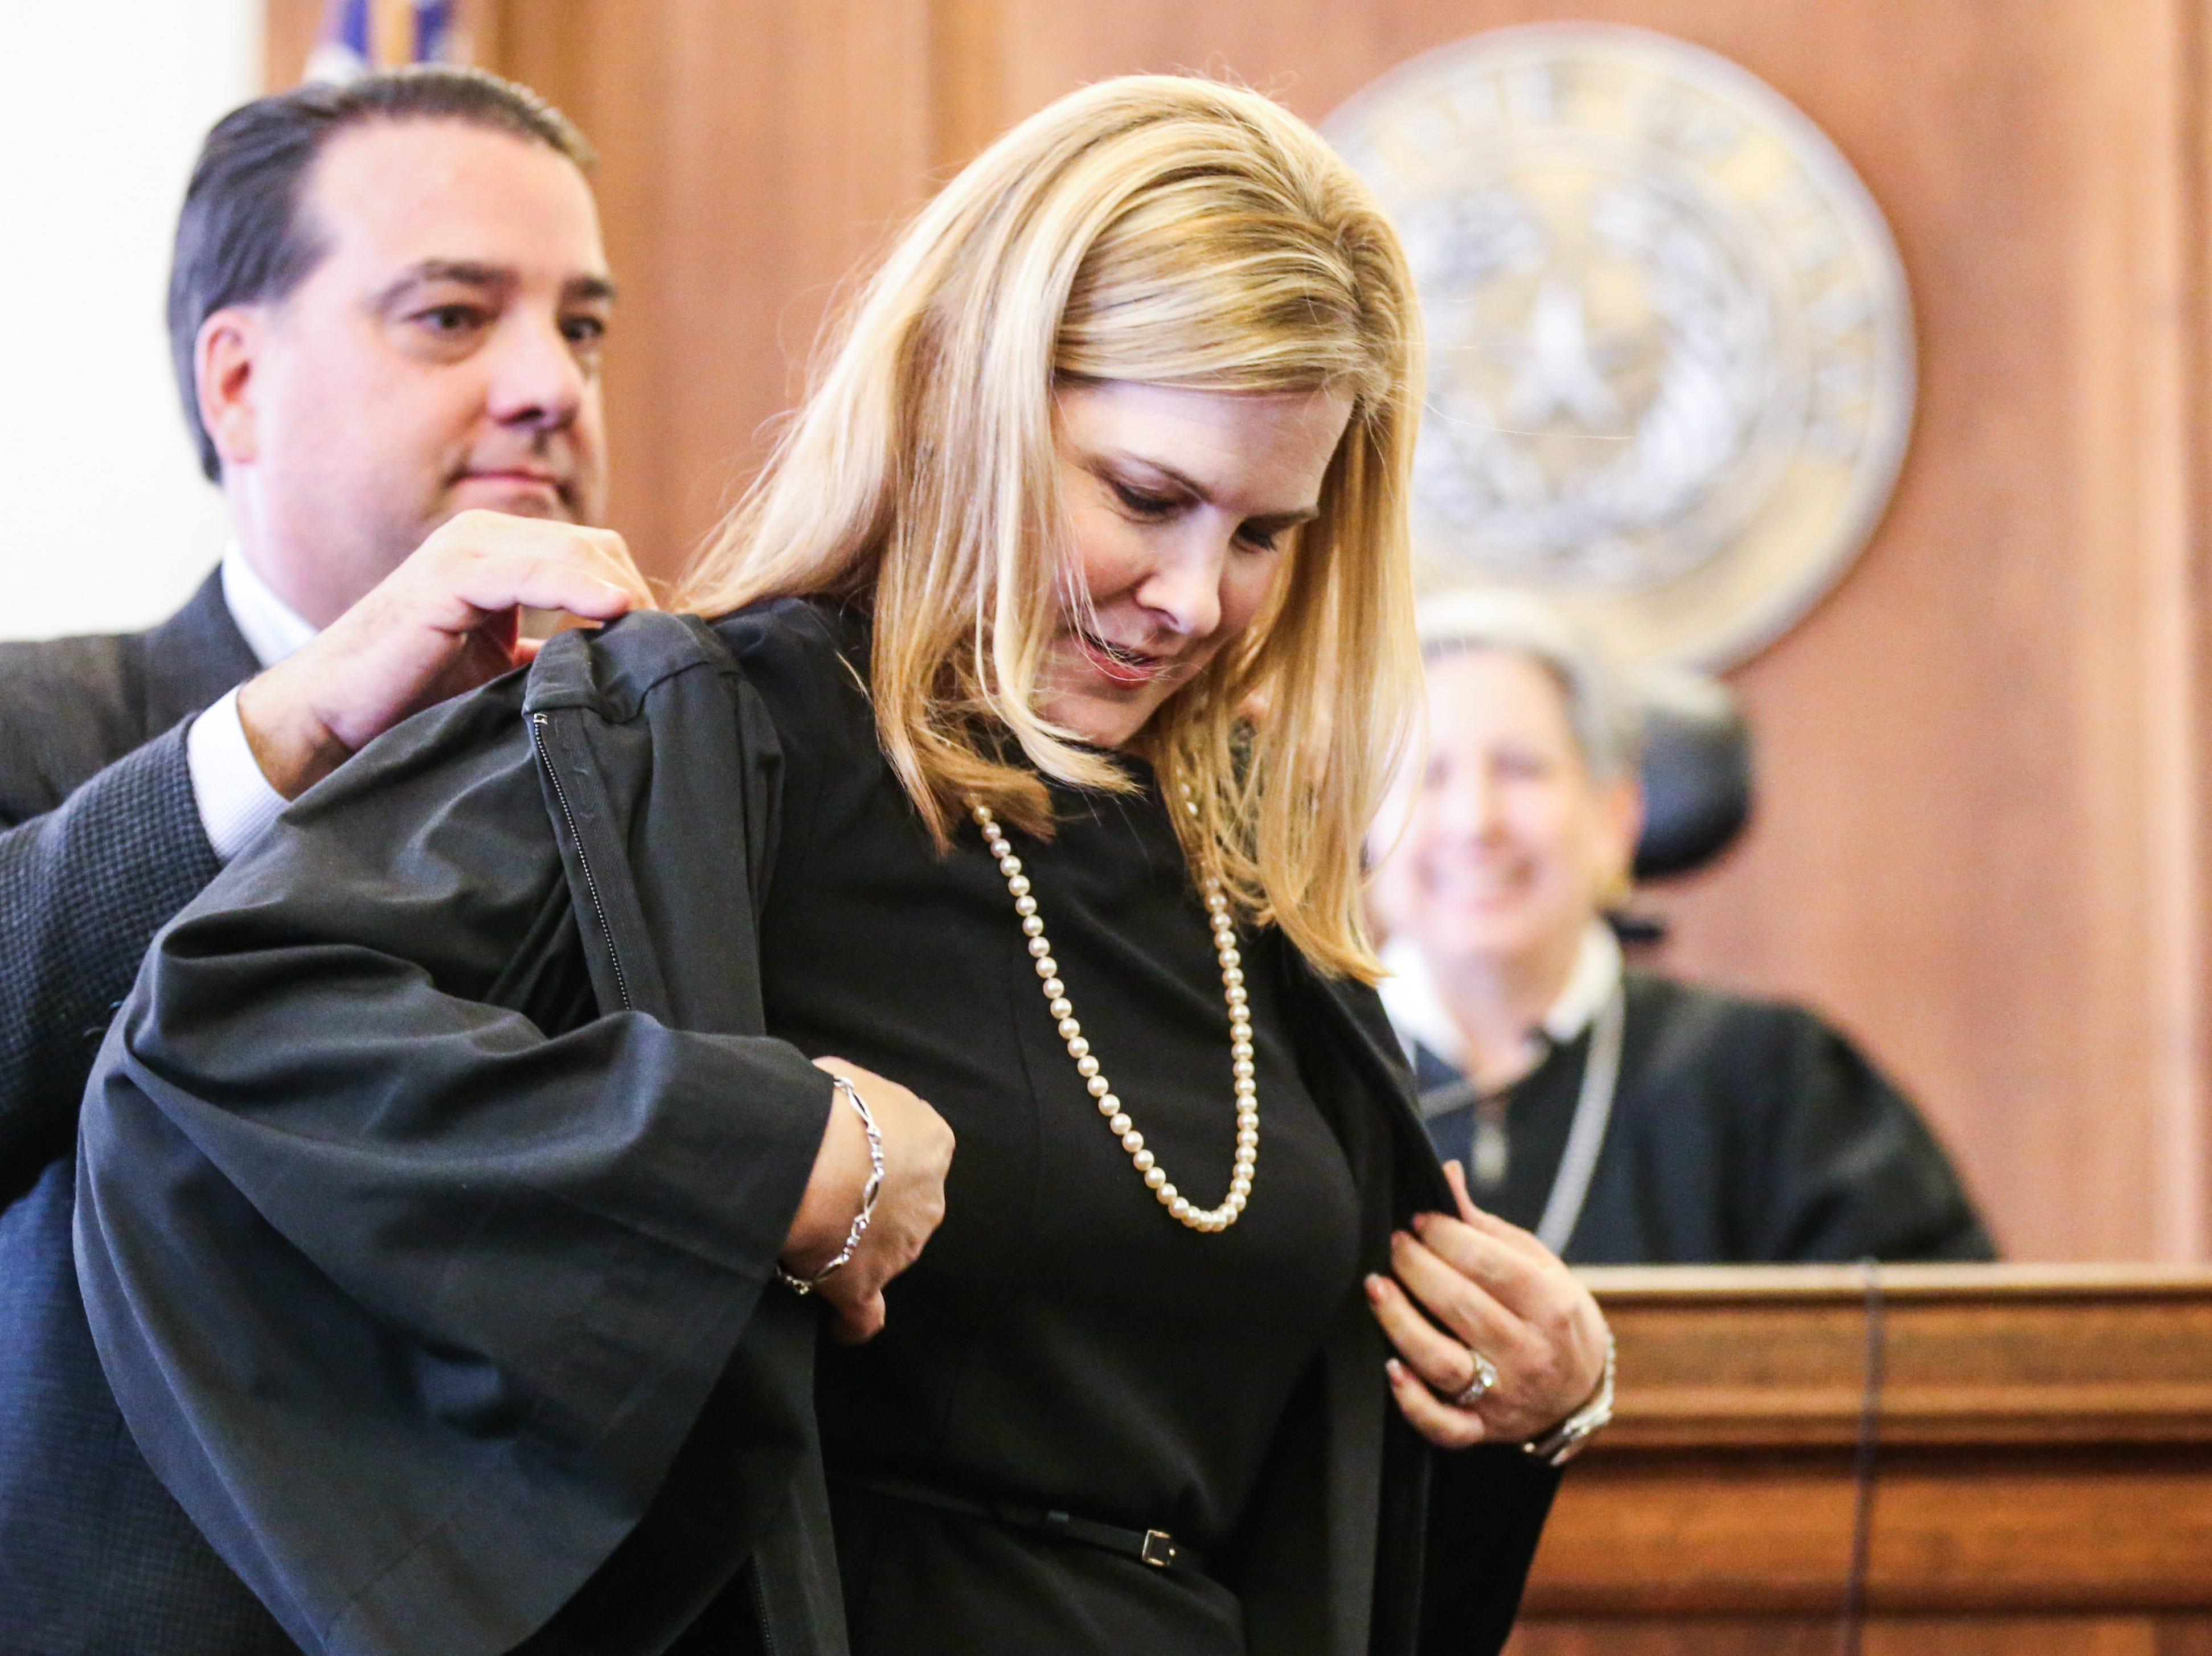 Judge Carmen Dusek puts on her robe after being sworn in as 51st District Court judge Friday, Dec. 14, 2018, at Tom Green Courthouse.